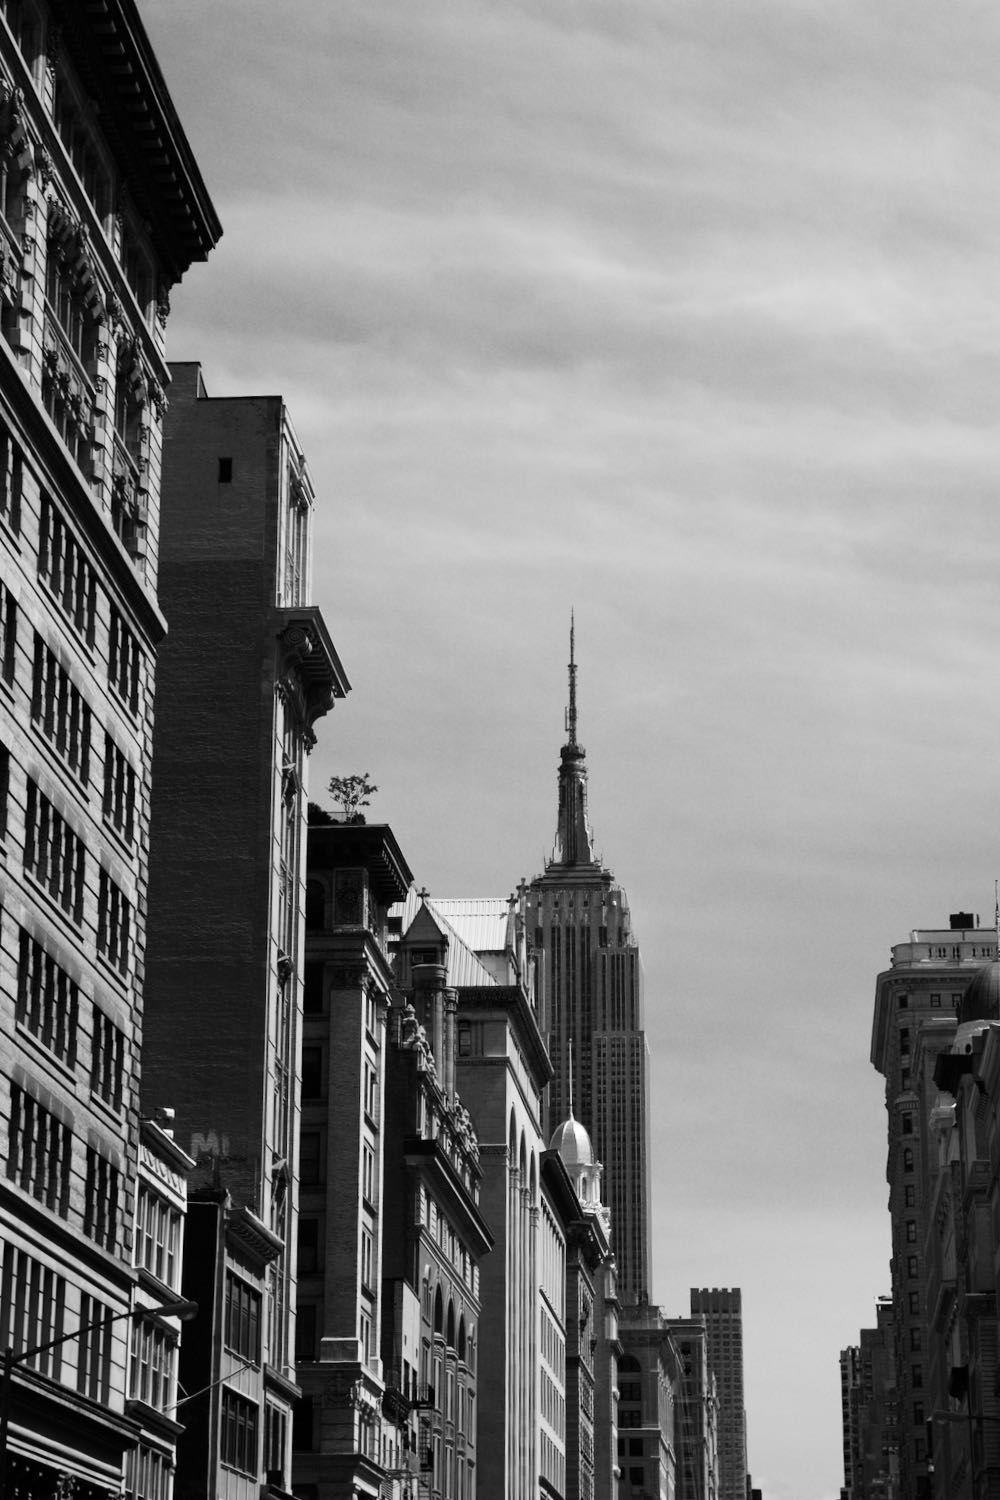 The empire state building 2016 in black and white